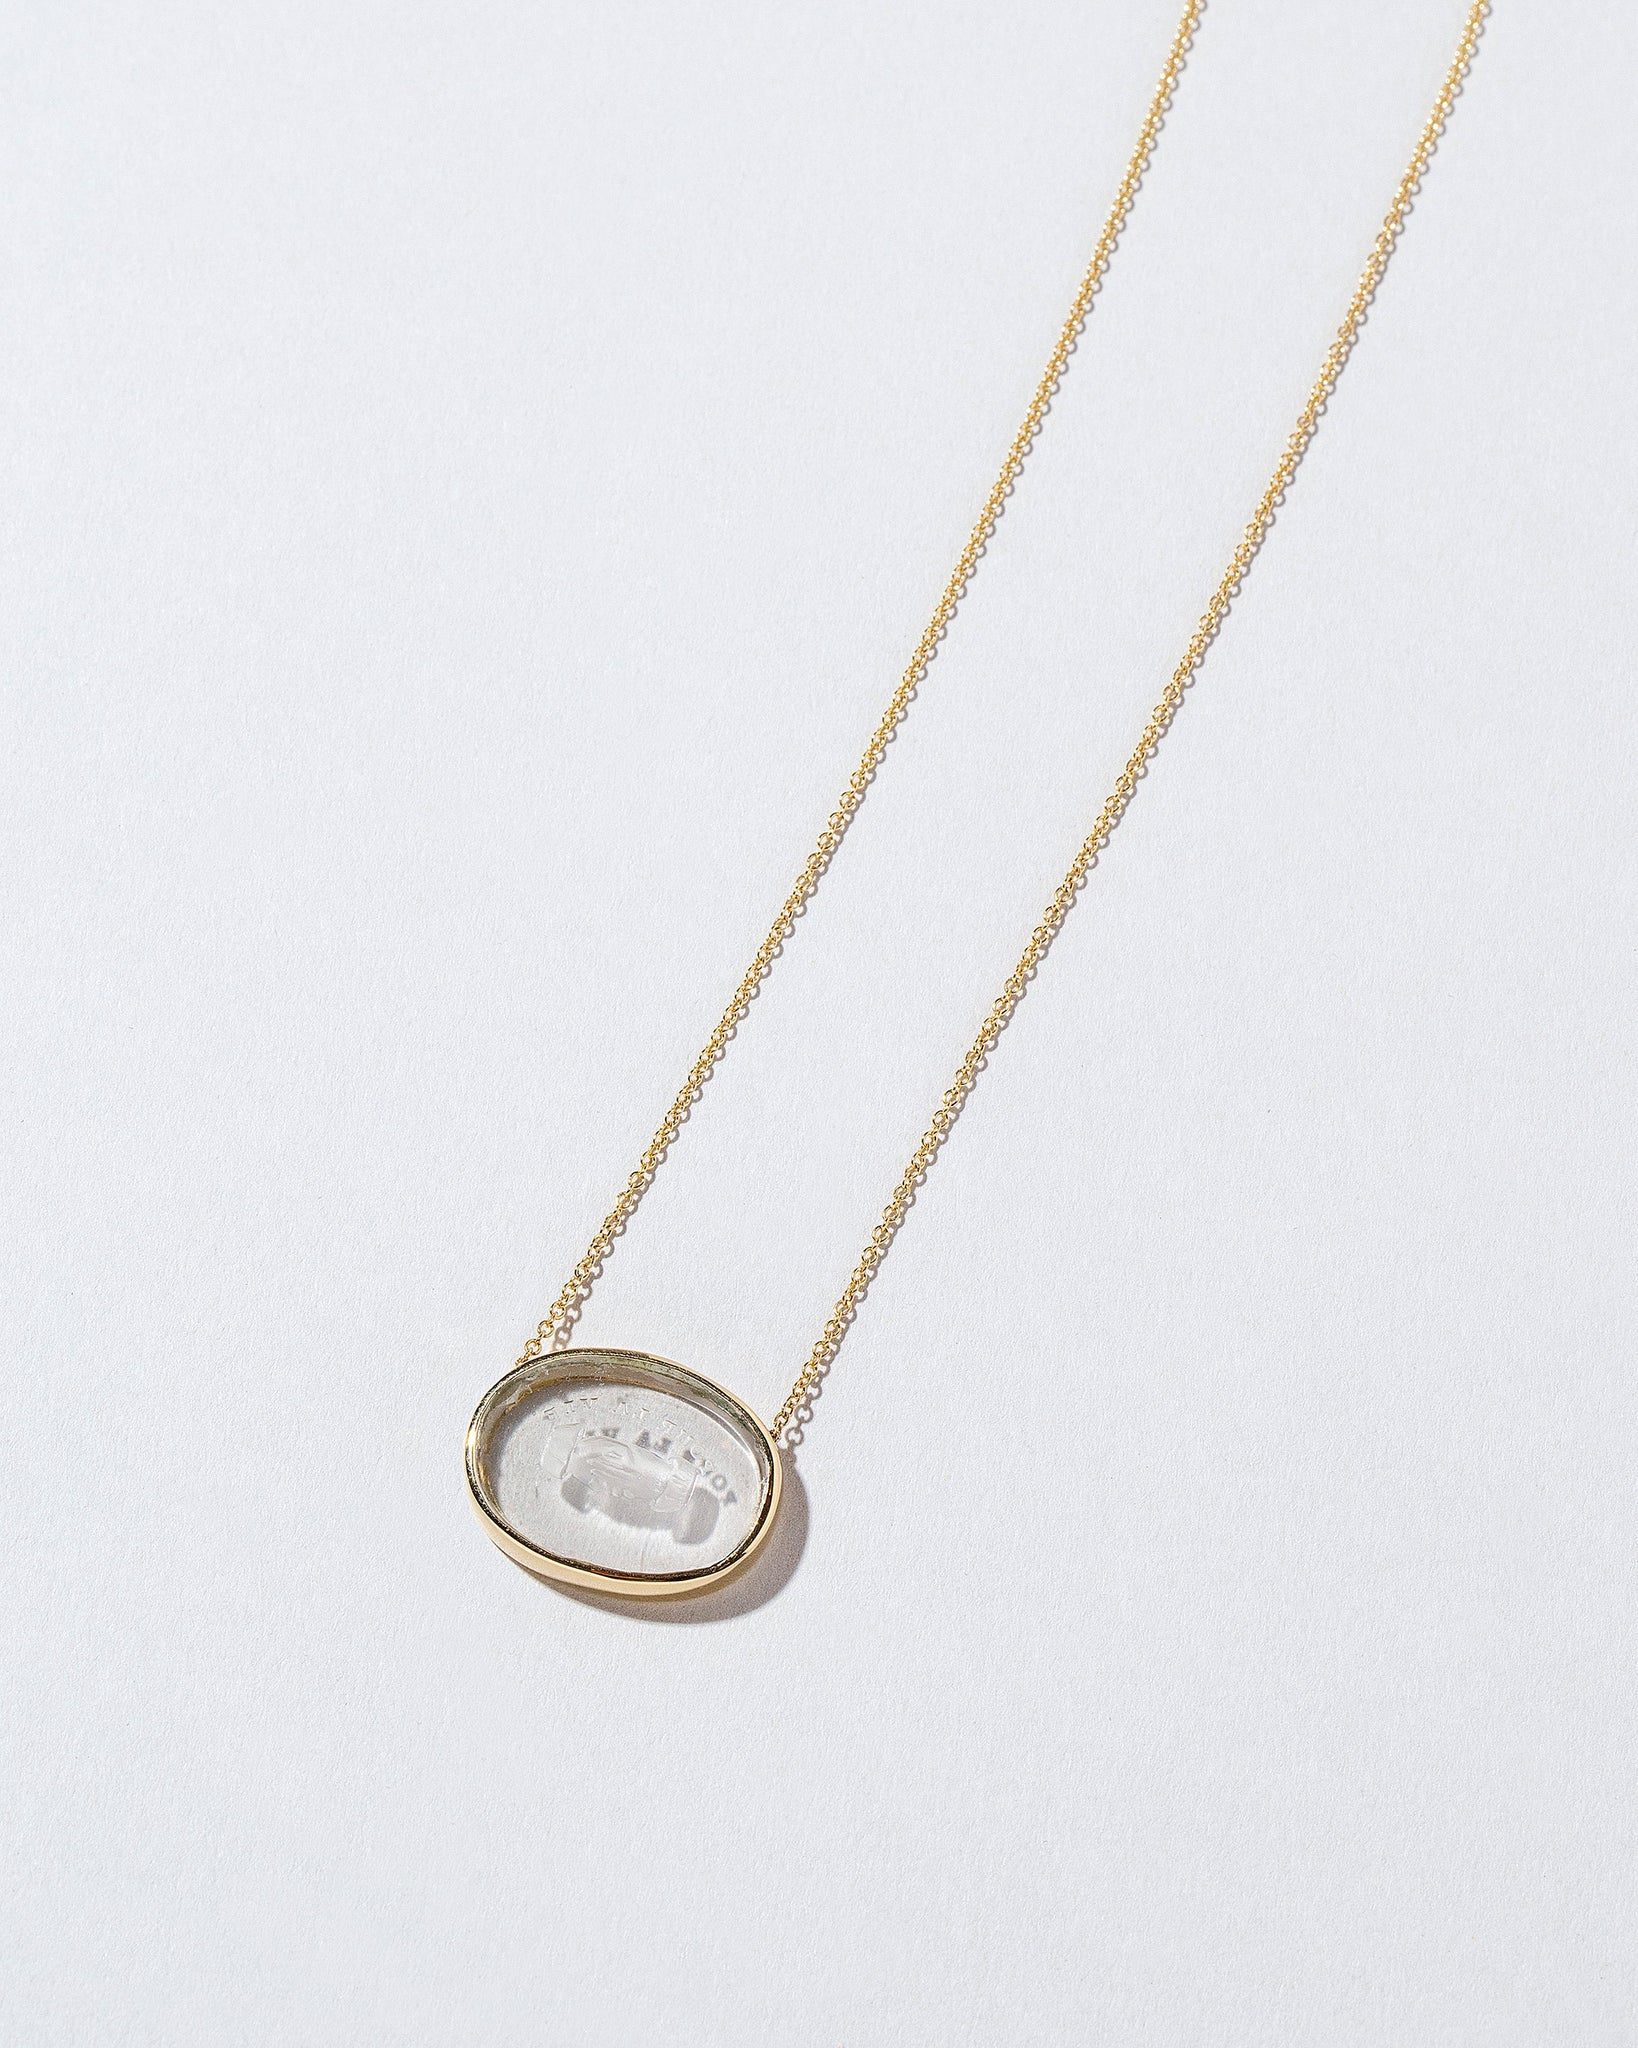 Eternity Intaglio Seal Necklace on light color background